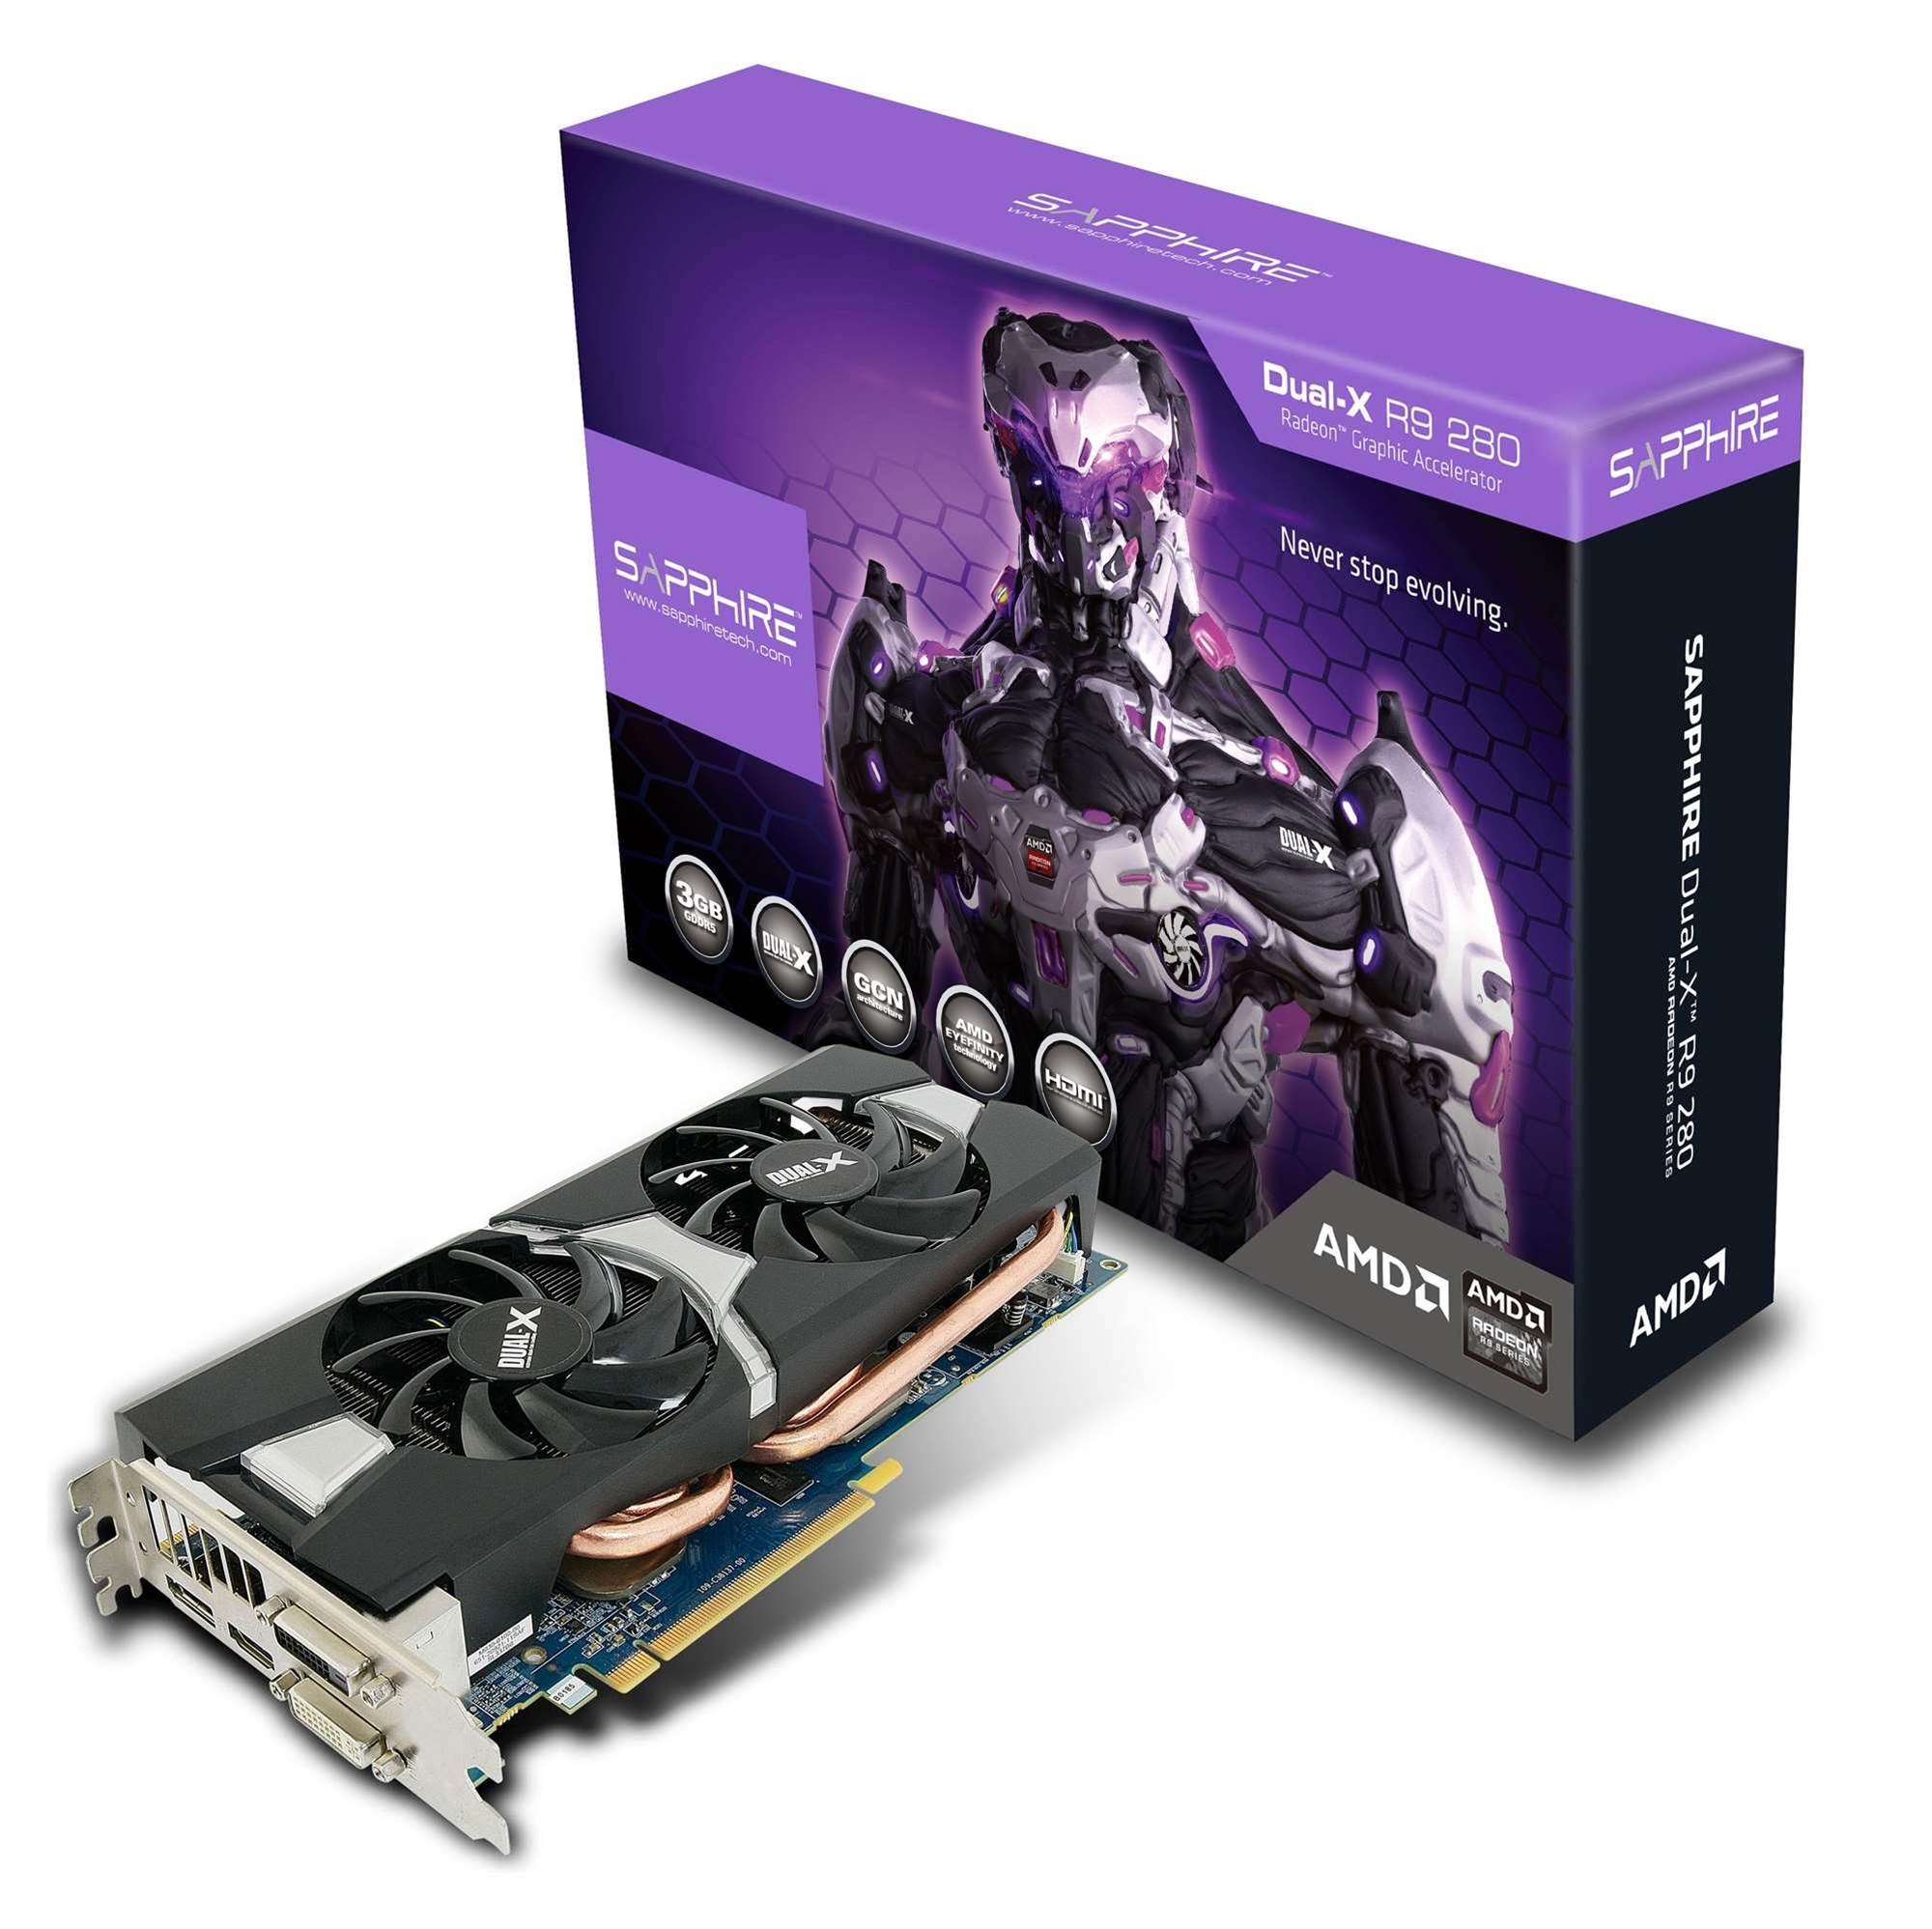 Sapphire releases new AMD R9 series video cards